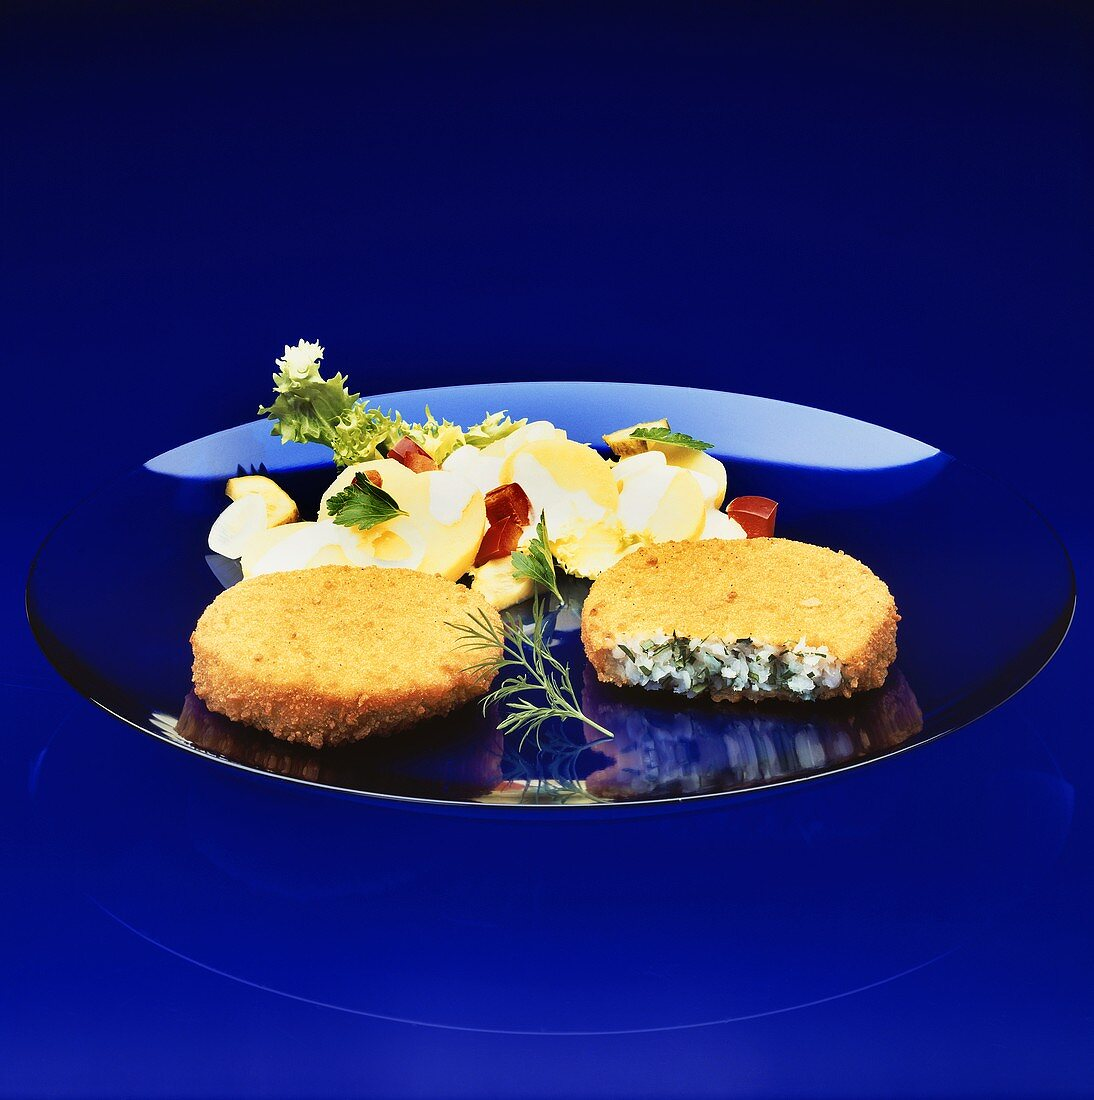 Two baked, breaded Fishcakes with potato salad on blue Plate